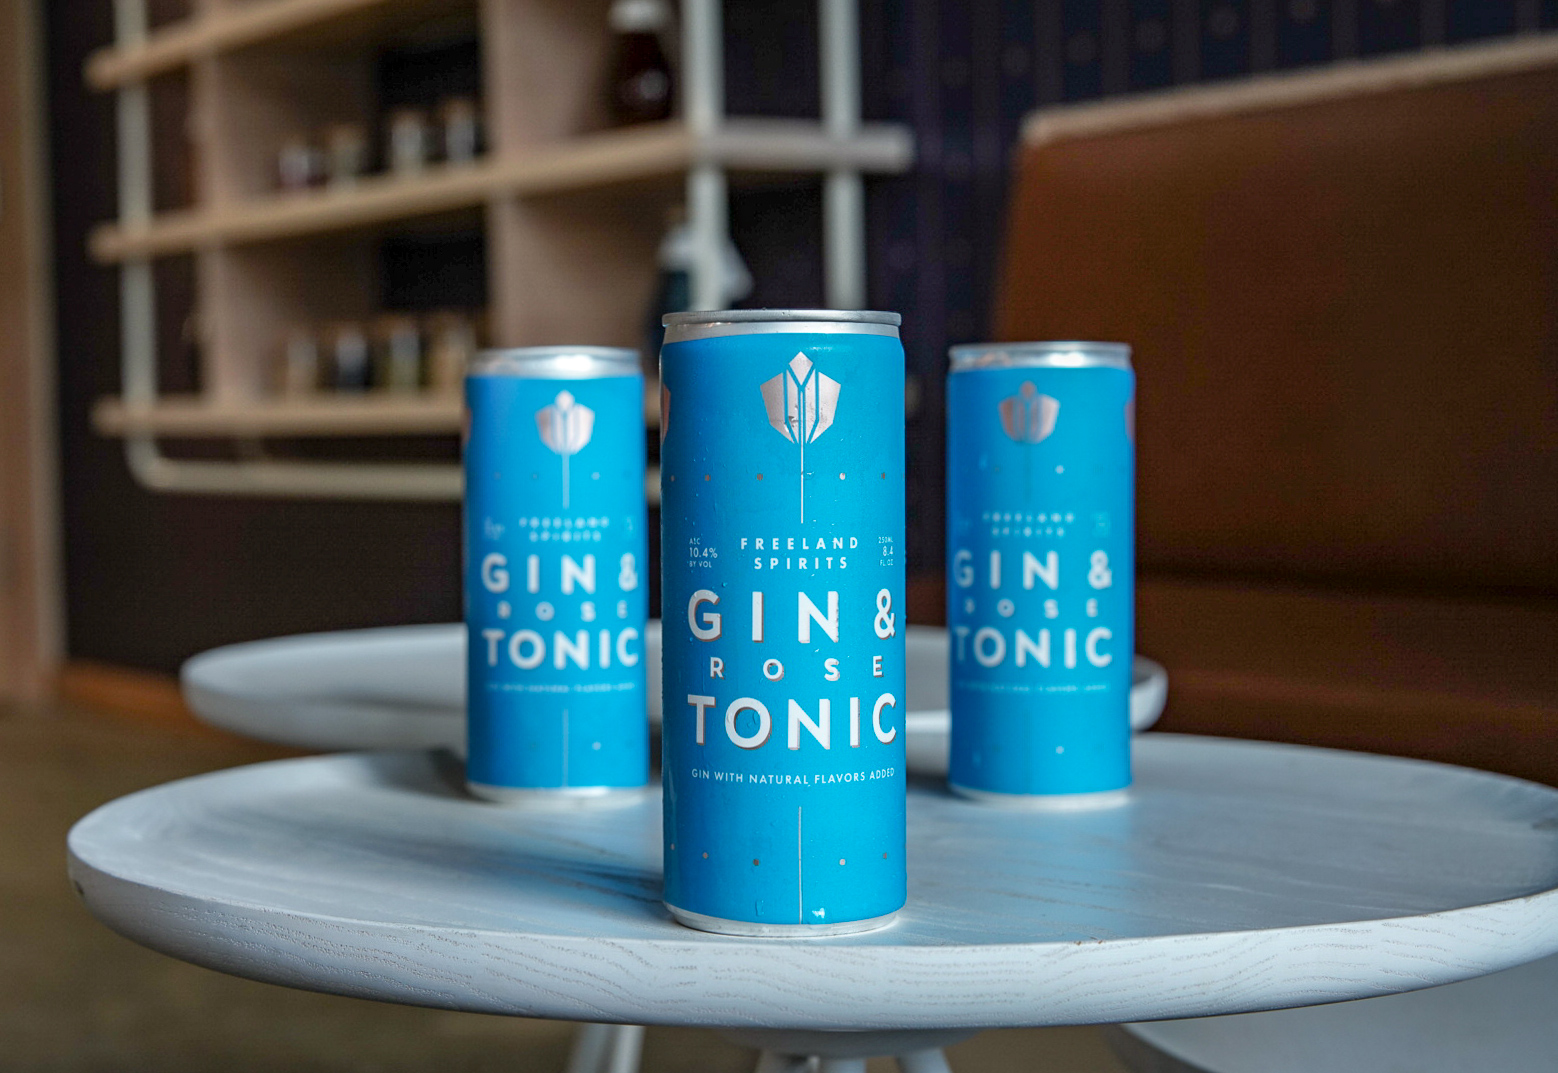 Canned Cocktails - Introducing: Gin & Rose Tonic. Bright citrus and fresh herbs ride a sparkling wave of juniper and roses… in a can.Freeland gin pairs perfectly with Portland Syrups' Rose Tonic in a 250 ml can at 10.4% abv. Freeland G&T cans celebrate the moment you're in, riverside, poolside or fireside, without missing a beat.Tonic brewed by Portland Syrups with seasonally selected whole ingredients including authentic cinchona bark, roses and natural sweeteners.